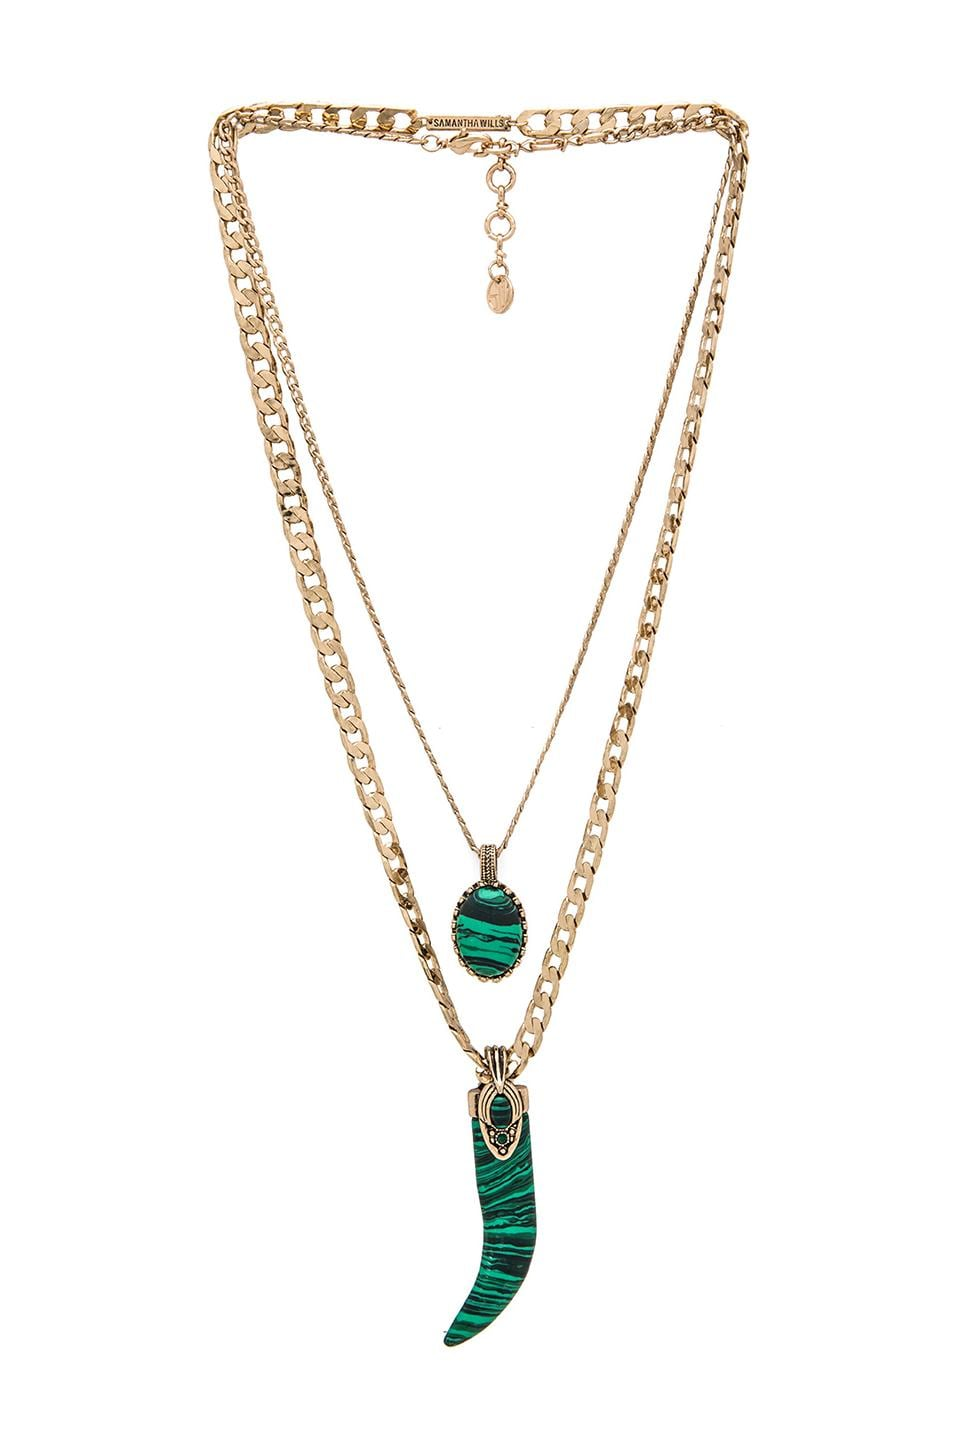 Samantha Wills Enchanted Twilight Layered Necklace in Malachite